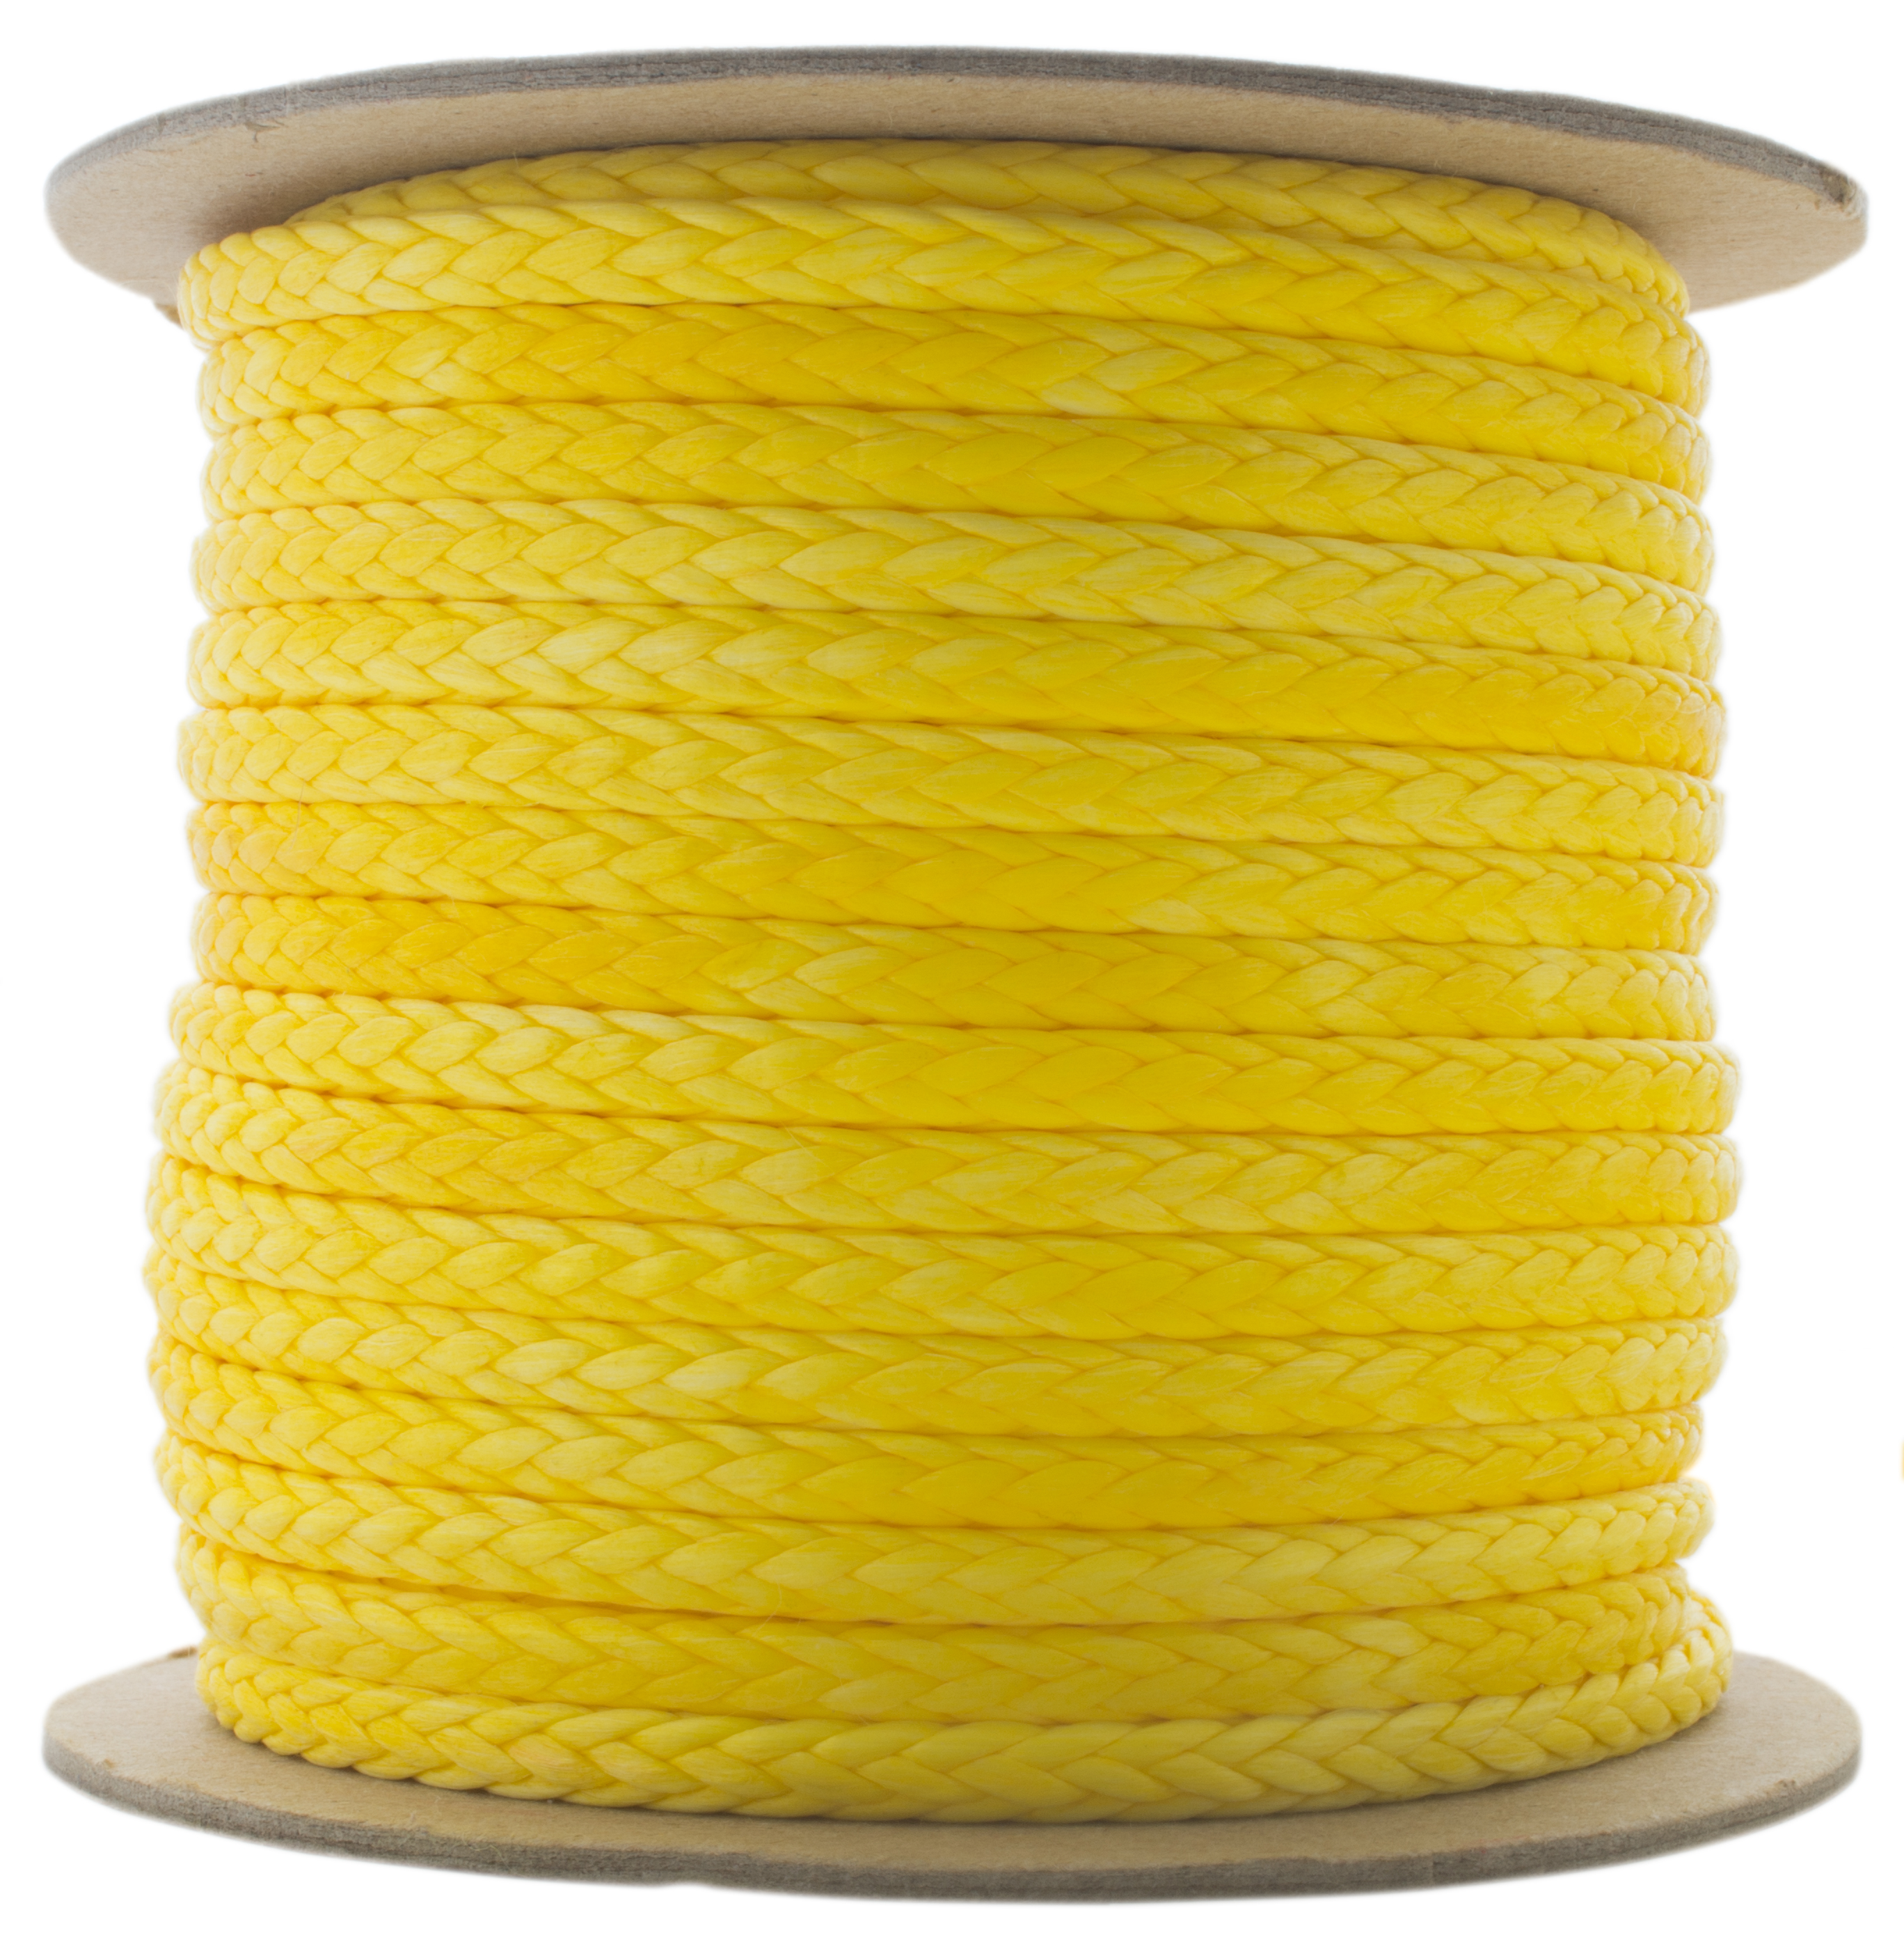 UHMWPE-ultra-high-molecular-weight-polyethylene-ultra-cord-yellow-100ft-compare-to-dyneema-spectra-or-amsteel-2